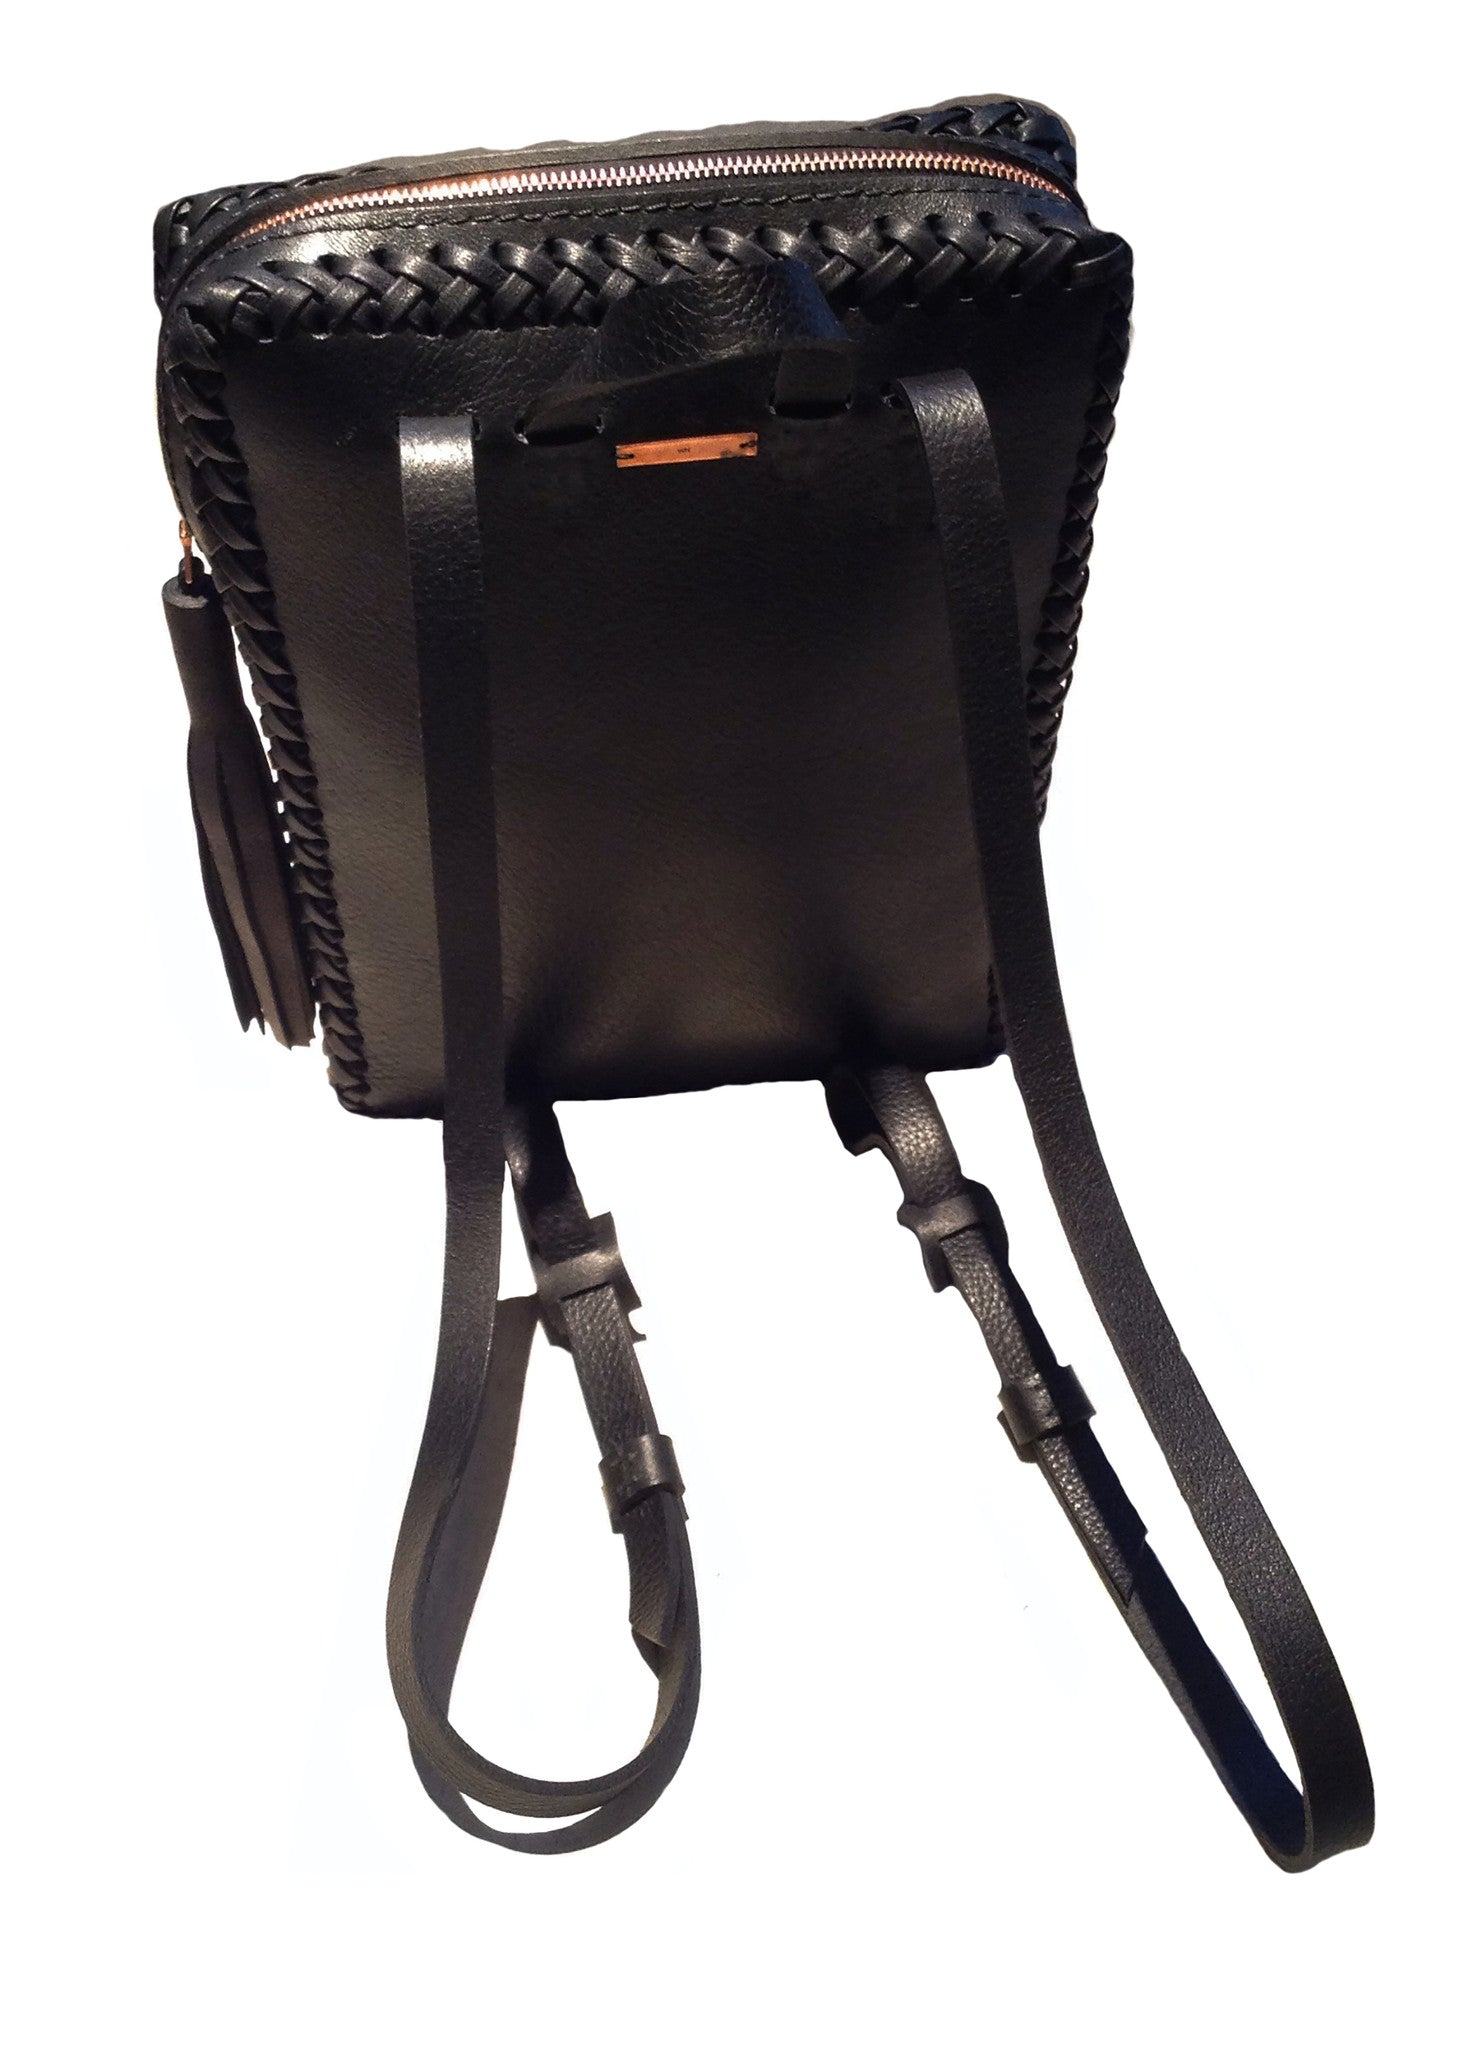 Black Leather Folio Backpack Wendy Nichol Handbag Purse Designer Handmade in NYC New York City Rectangle Square Braided Structured Structural French Work School Computer Backpack Travel Essentials Essential Luggage Fringe Tassel Adjustable Straps Zip Zipper High Quality Leather